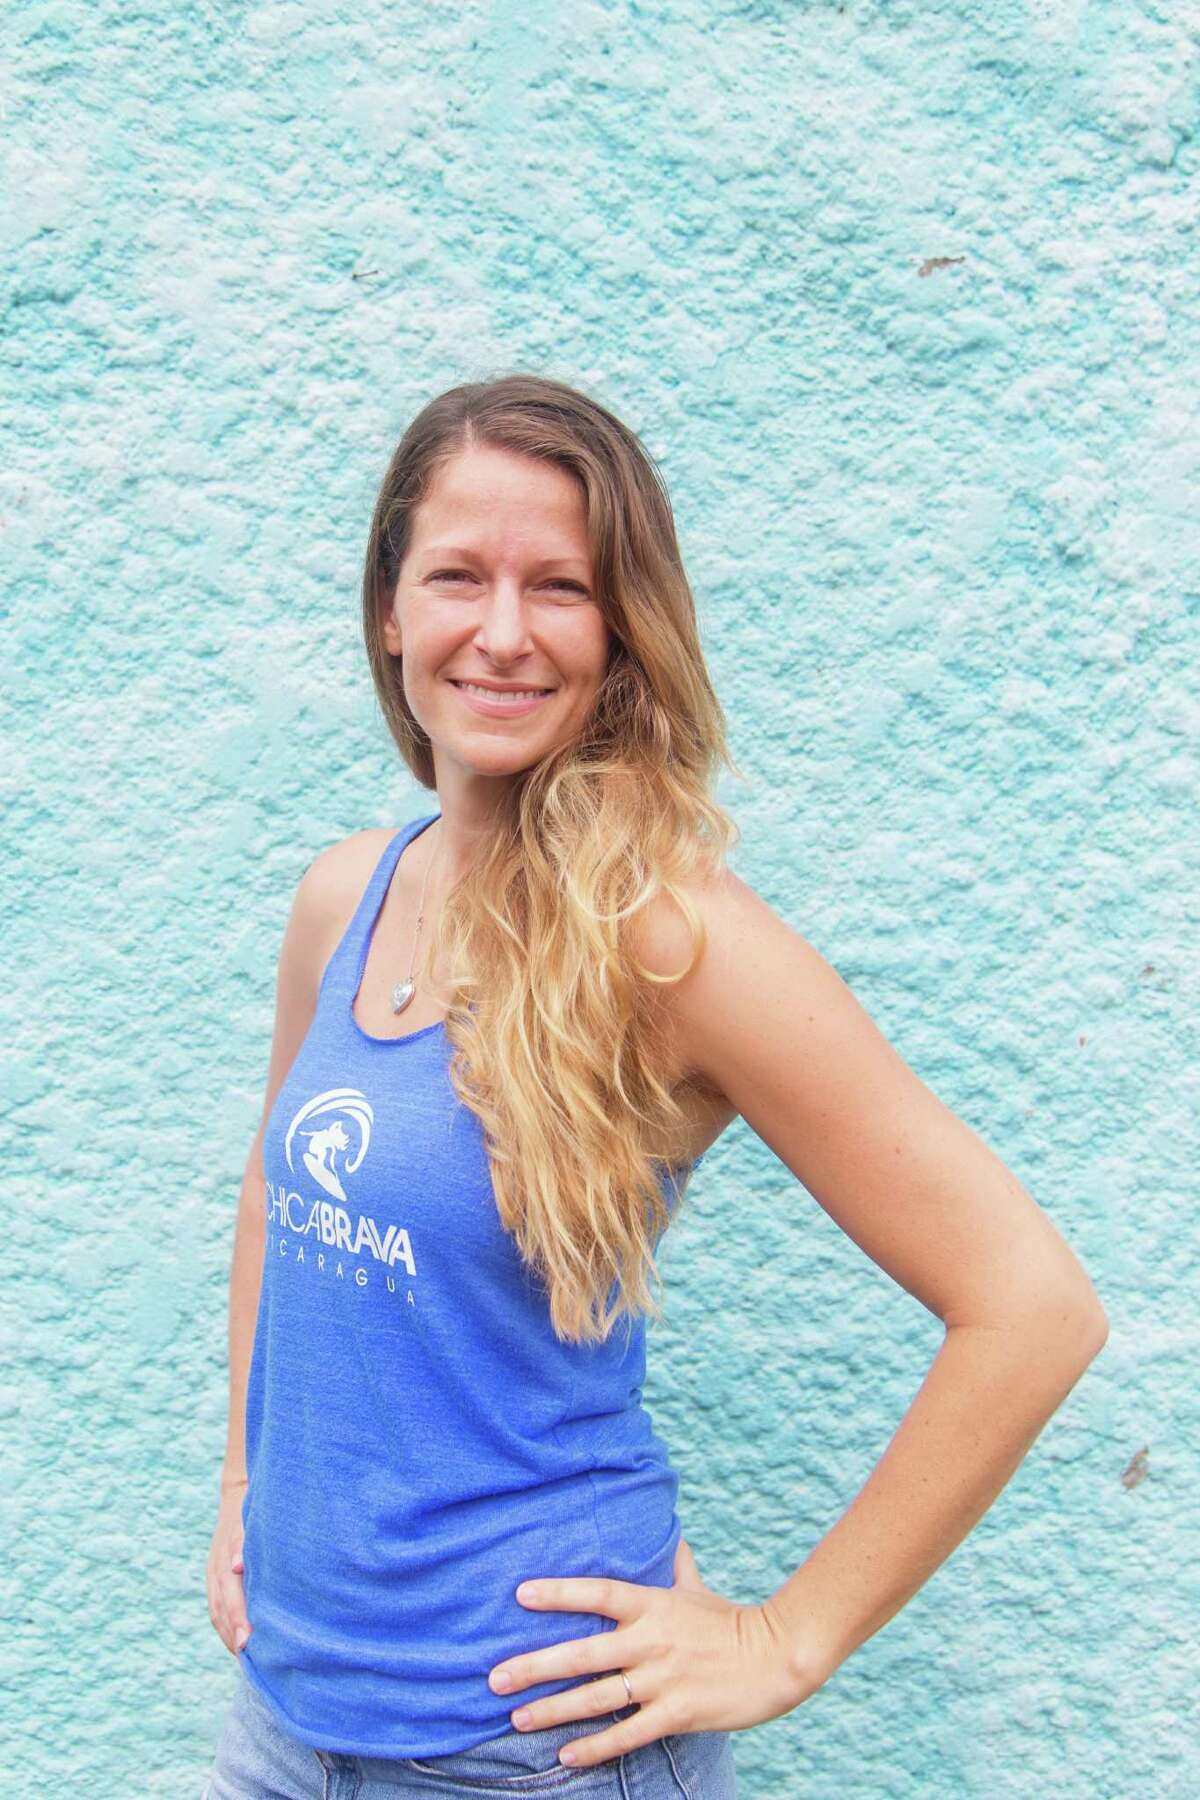 Houston native Ashley Blaylock visited Nicaragua on a surfing vacation. She ended up staying, starting Chicabrava, a surfing camp for women.